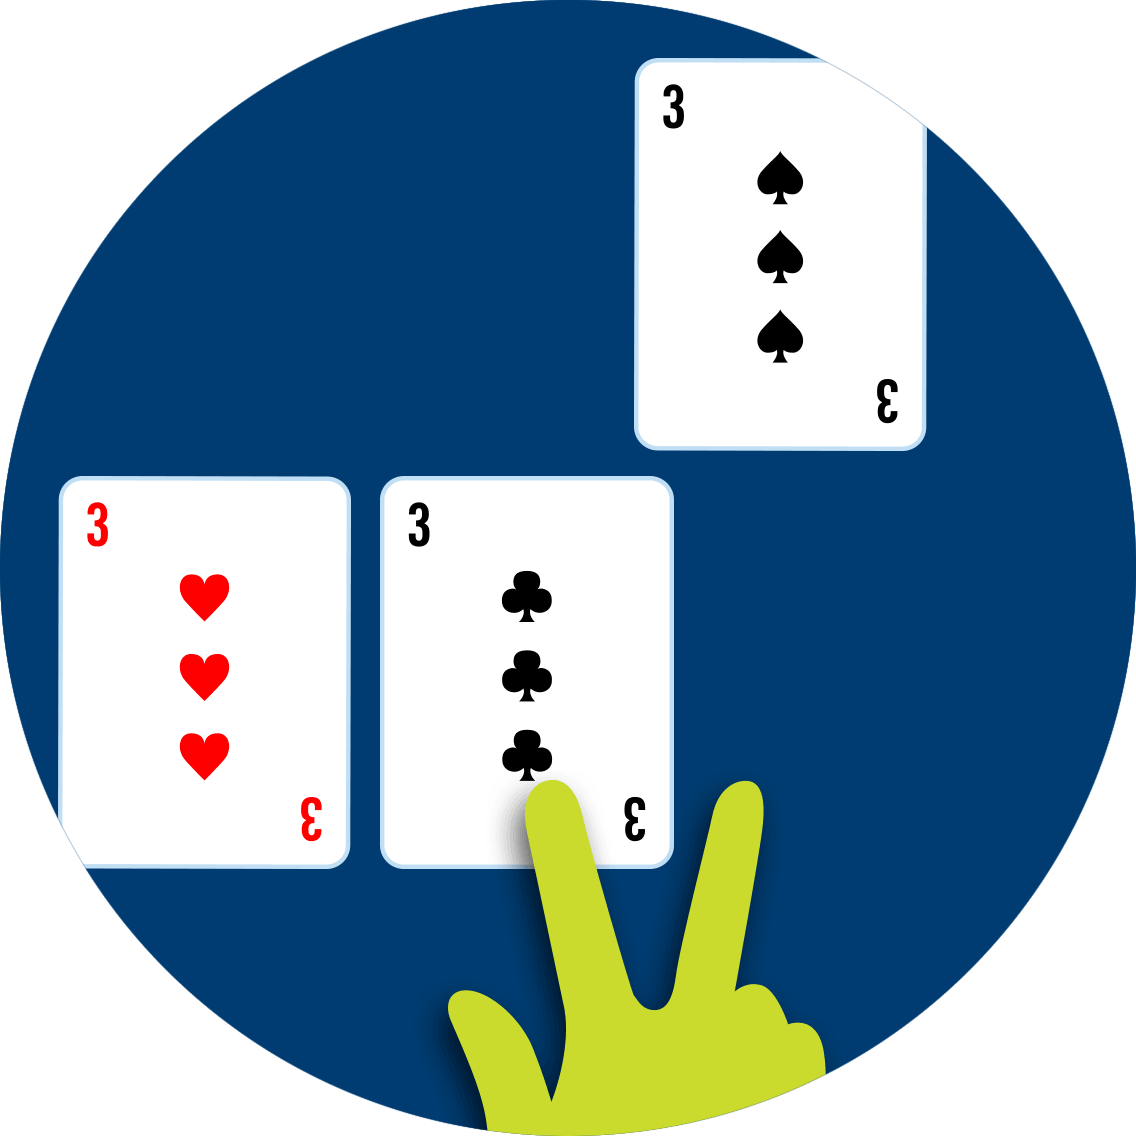 3 of spades splits from the original split of a 3 of hearts and 3 of clubs.